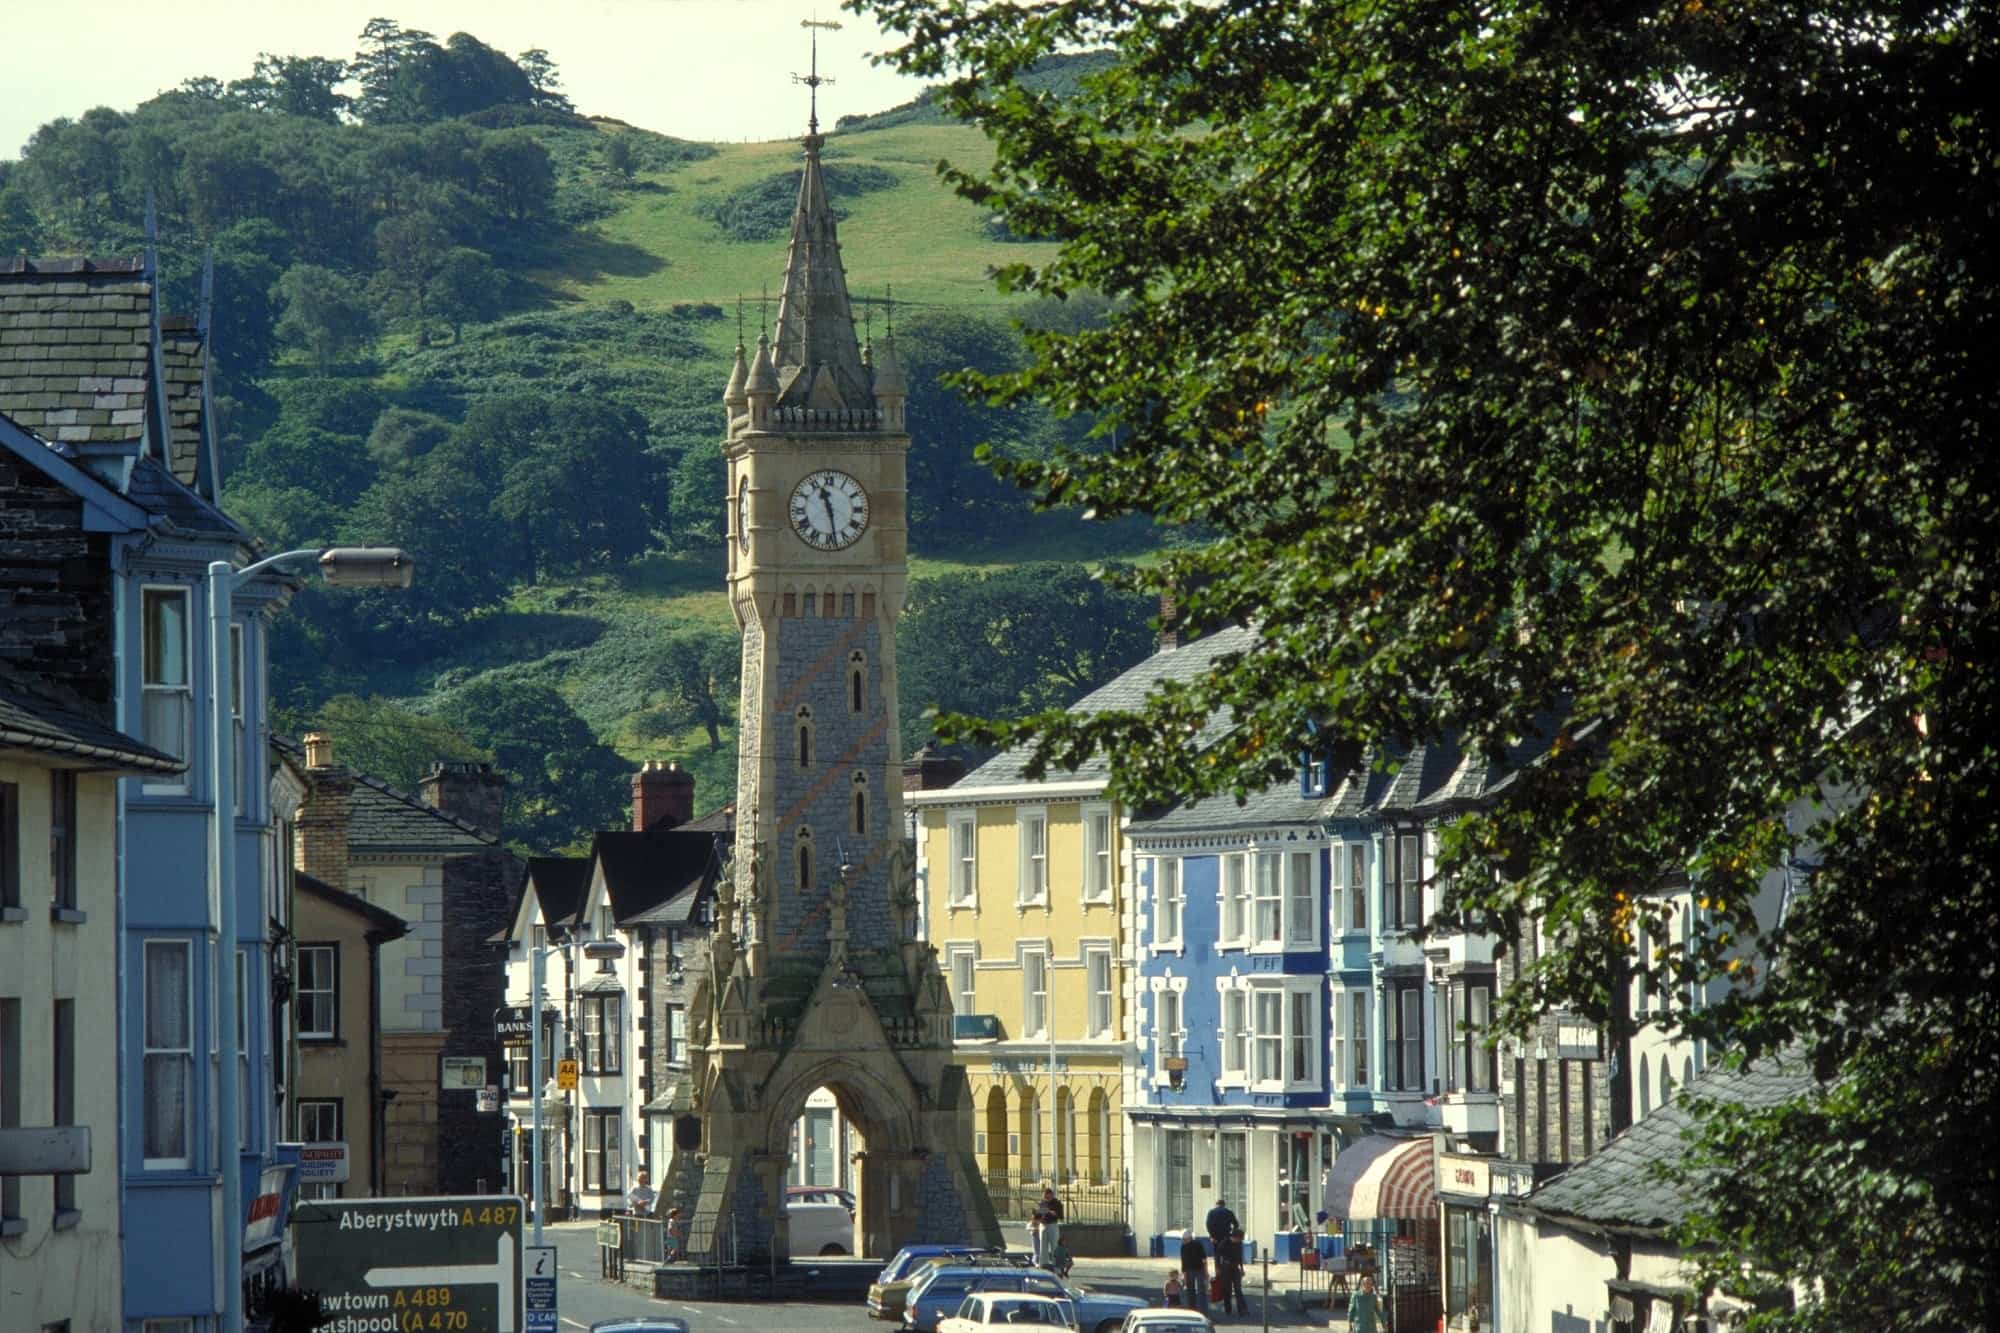 Image of The Clock Tower at Machynlleth